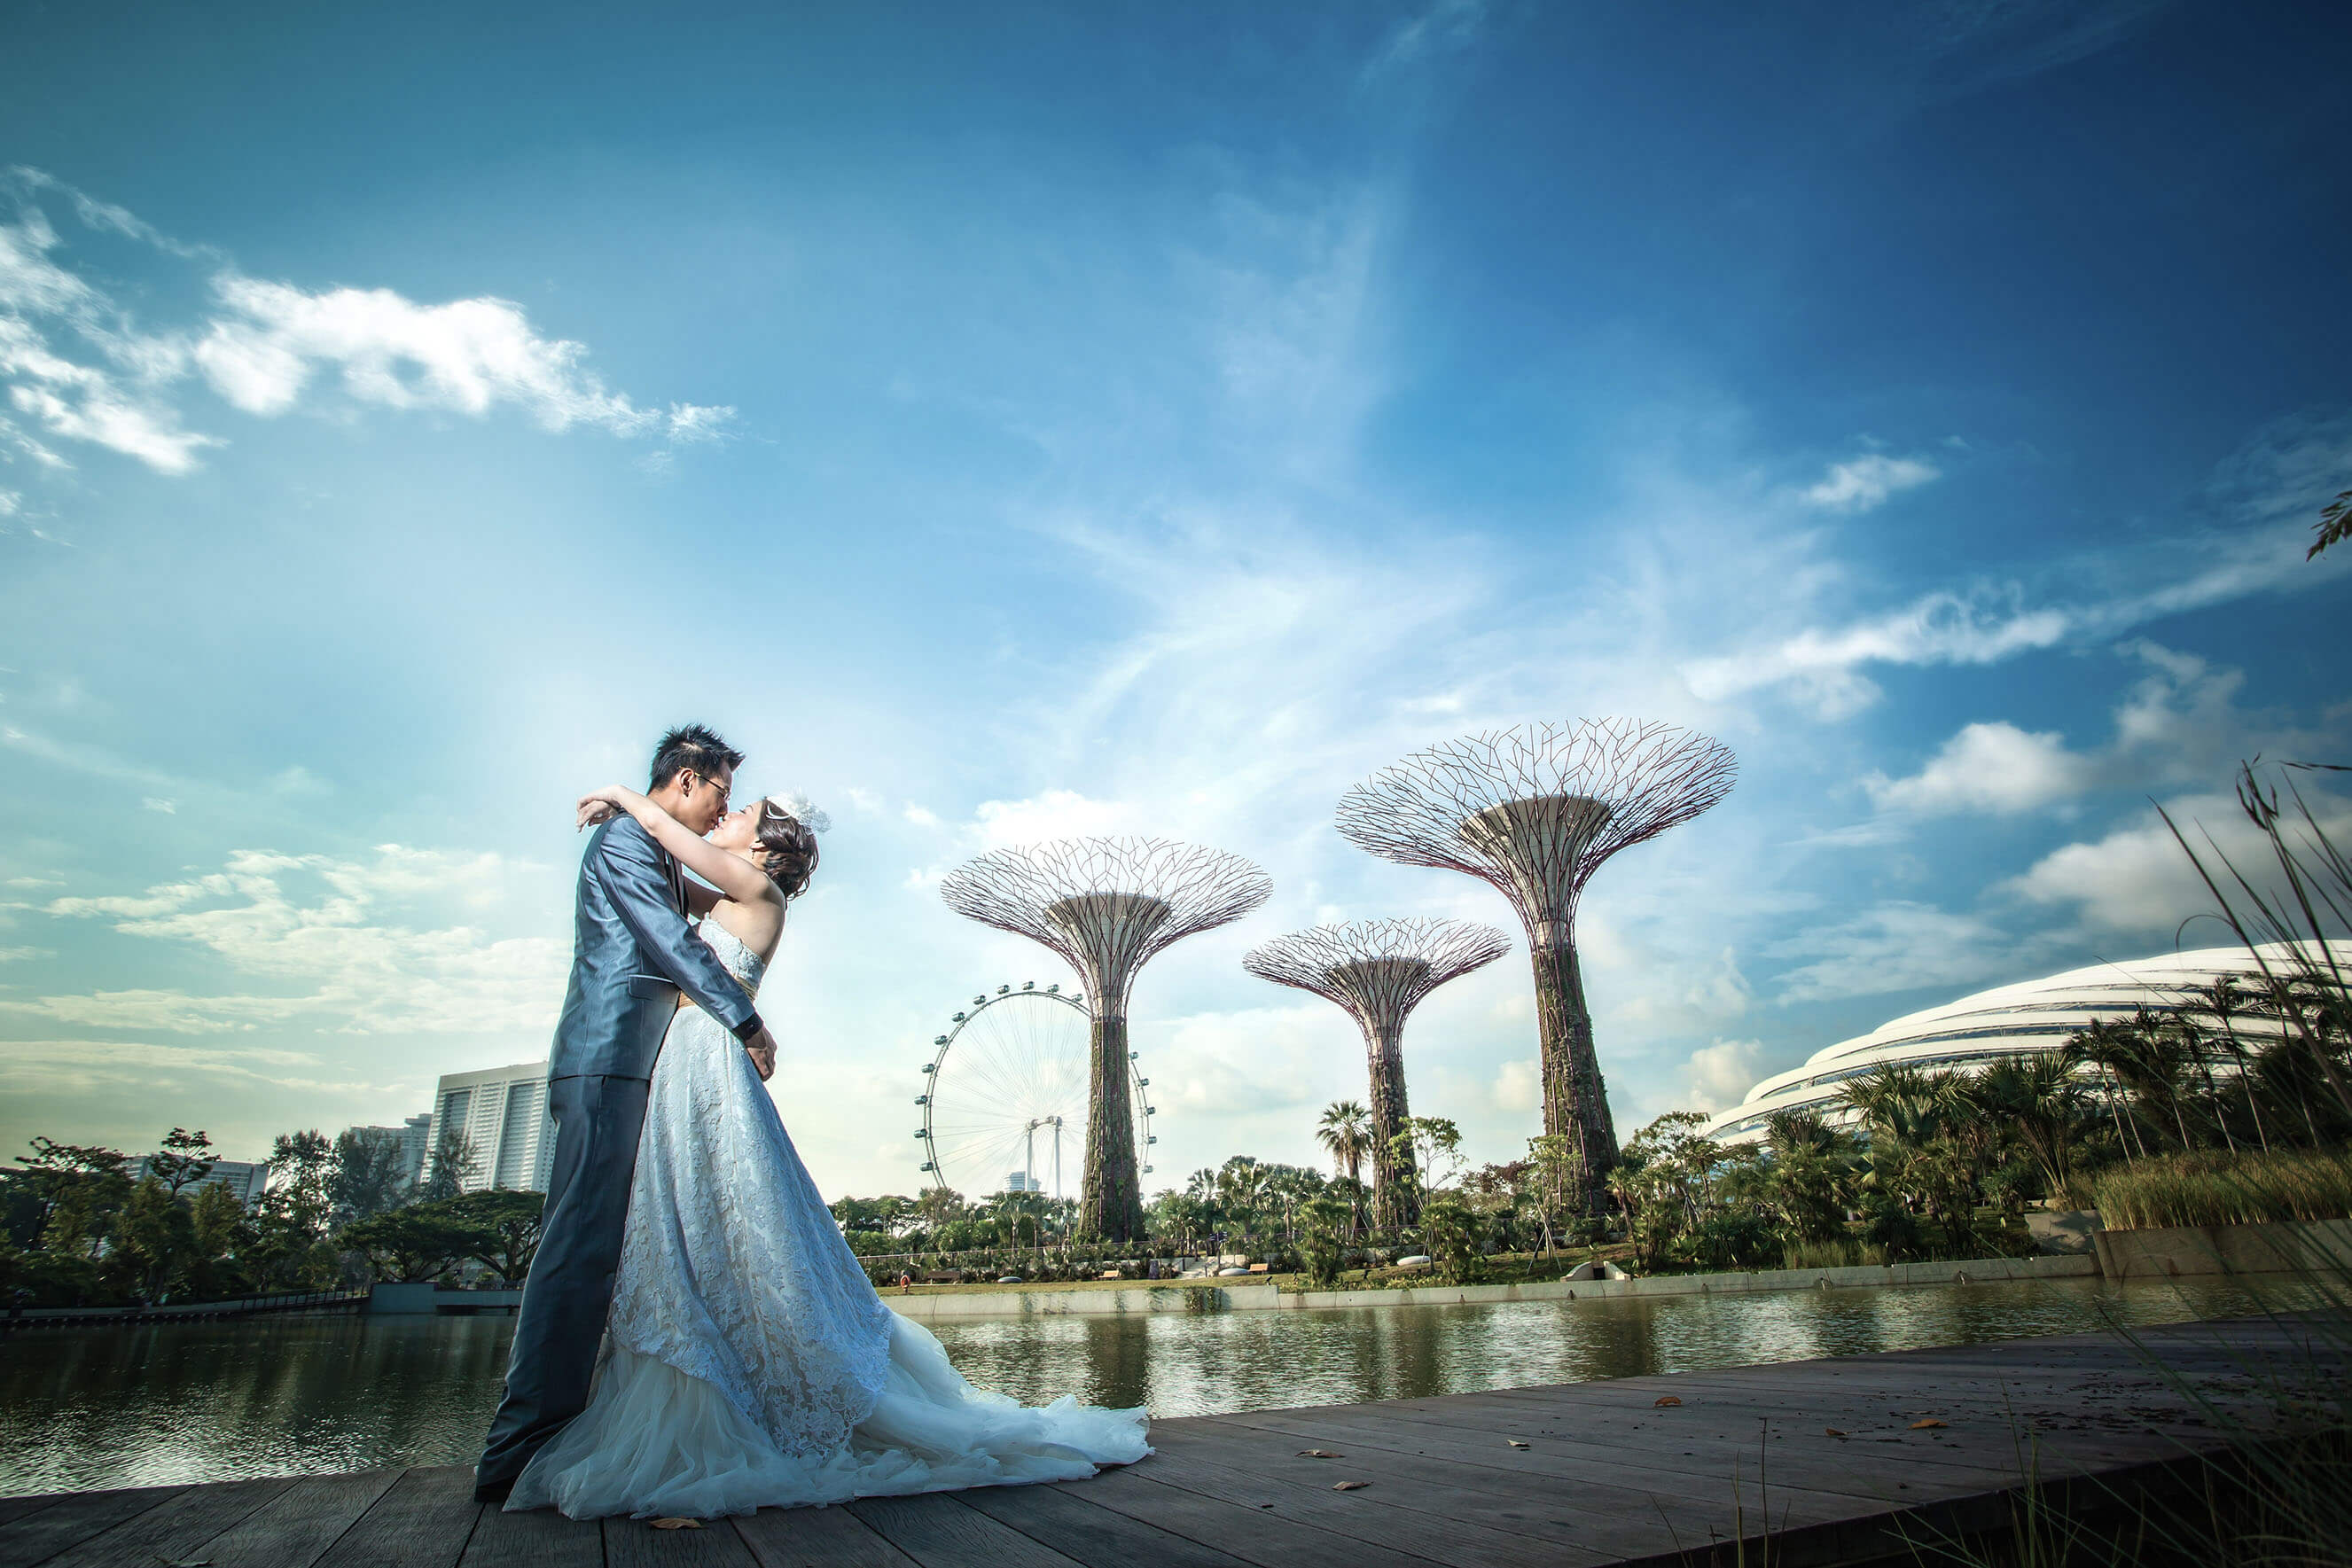 romantic couple holding each other in Gardens By The Bay